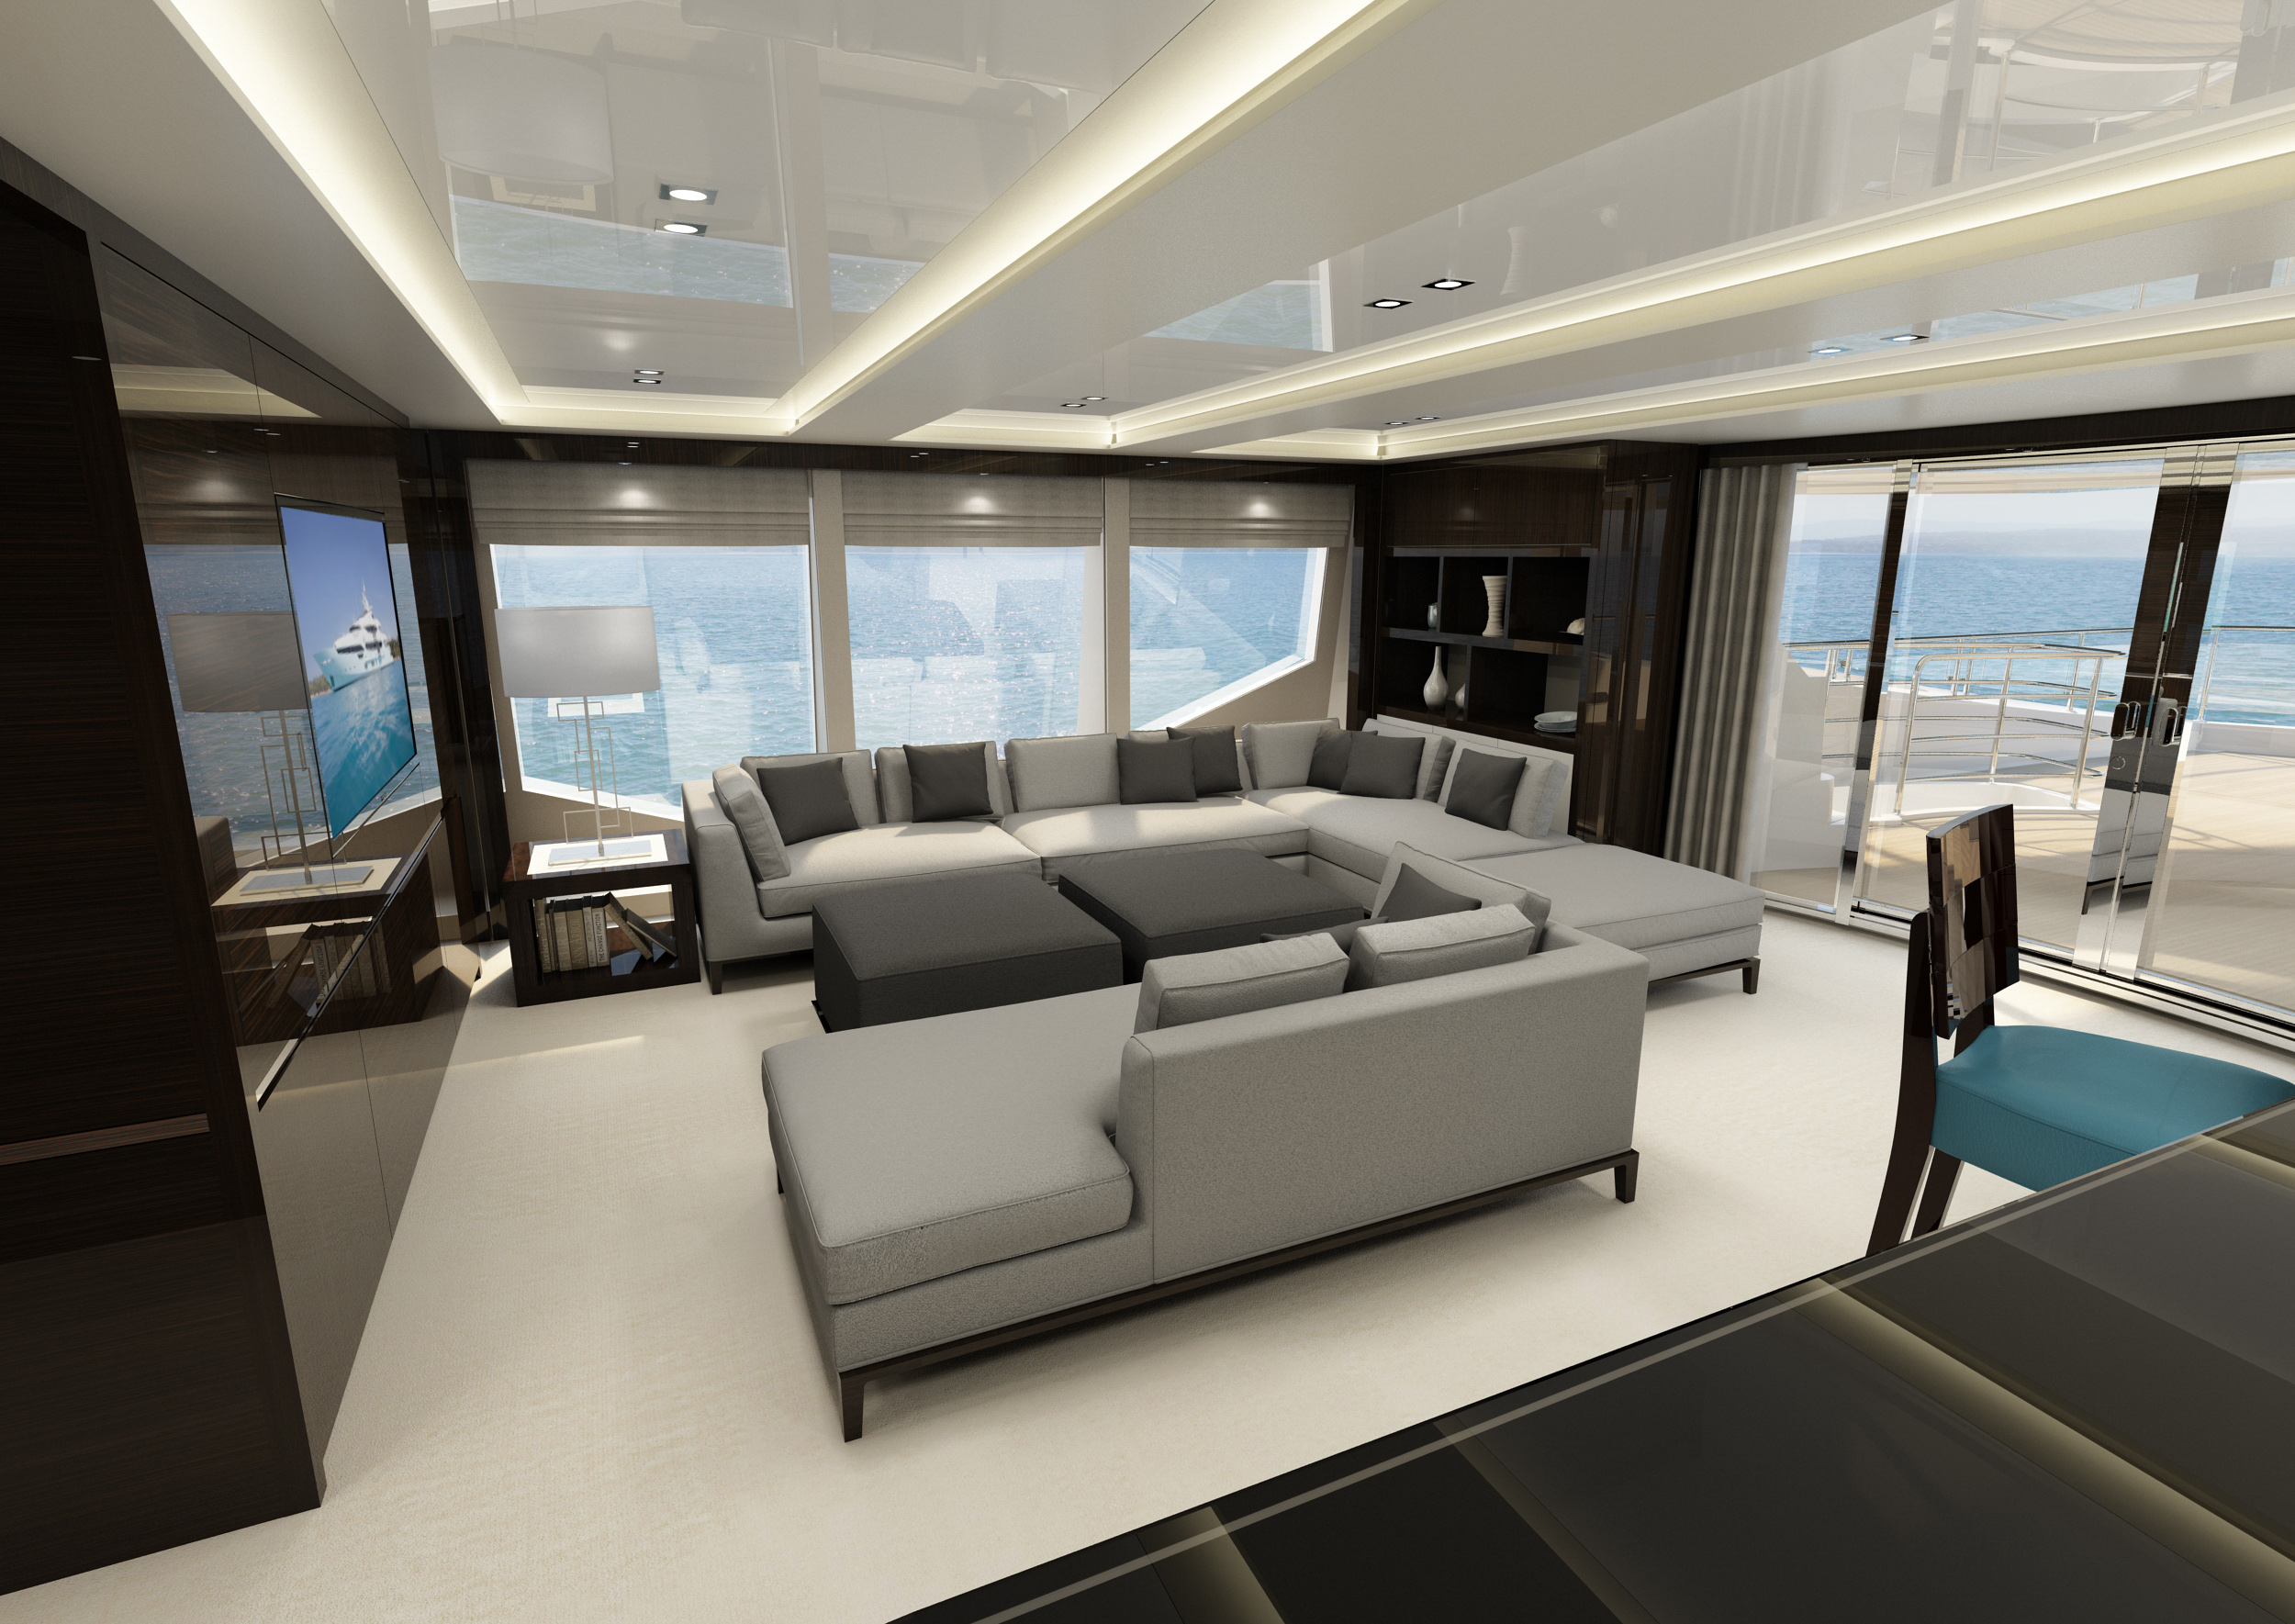 Exclusive Images Of New Sunseeker 131 Yacht Revealed